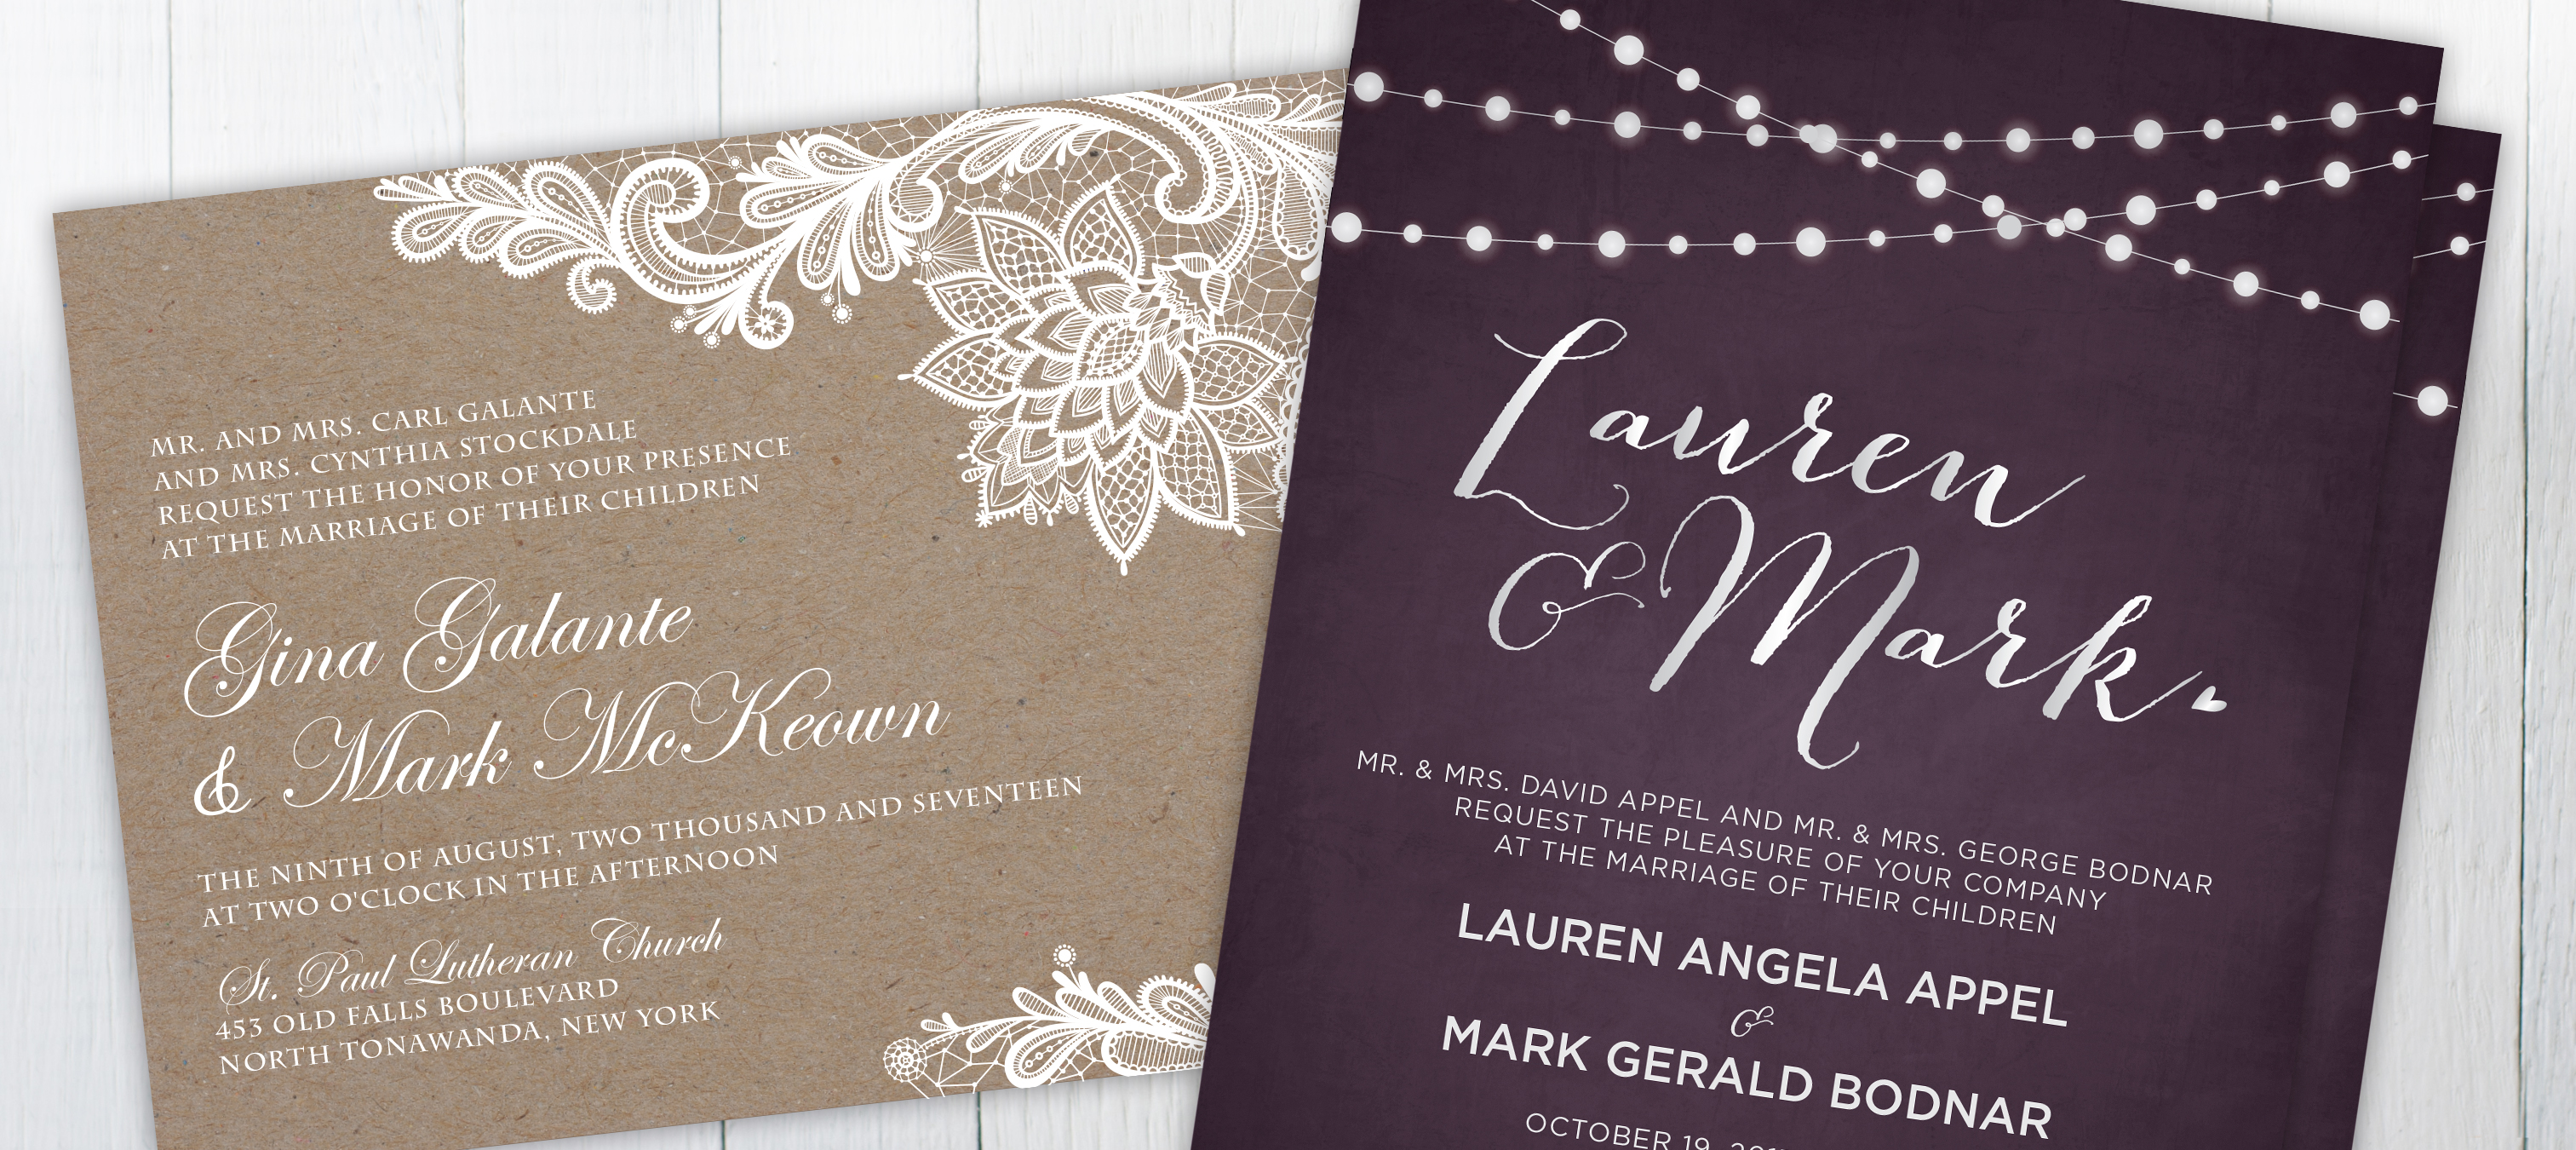 together with their parents hh_email_invites_aug2015 - Wedding Invitation Wording Together With Their Parents